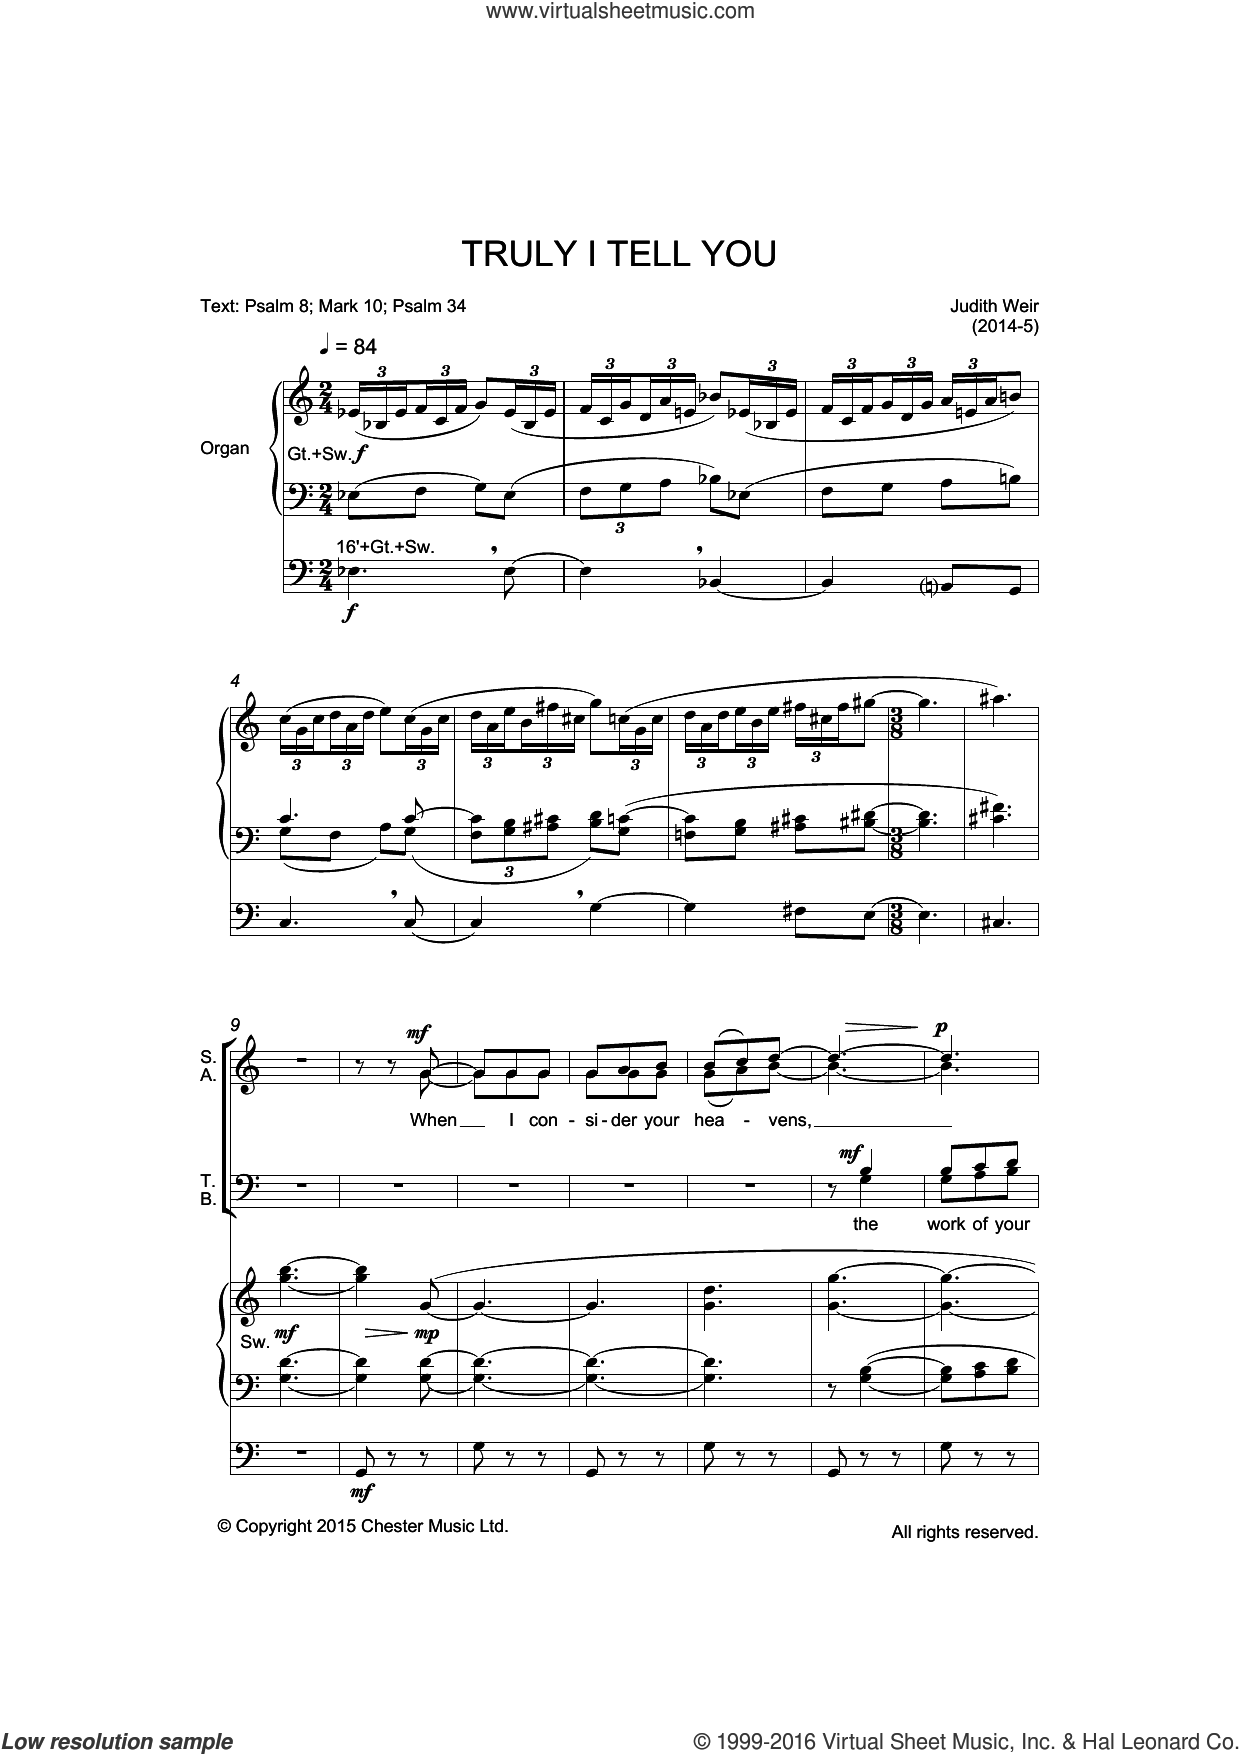 Truly I Tell You sheet music for voice, piano or guitar by Liturgical and Judith Weir. Score Image Preview.